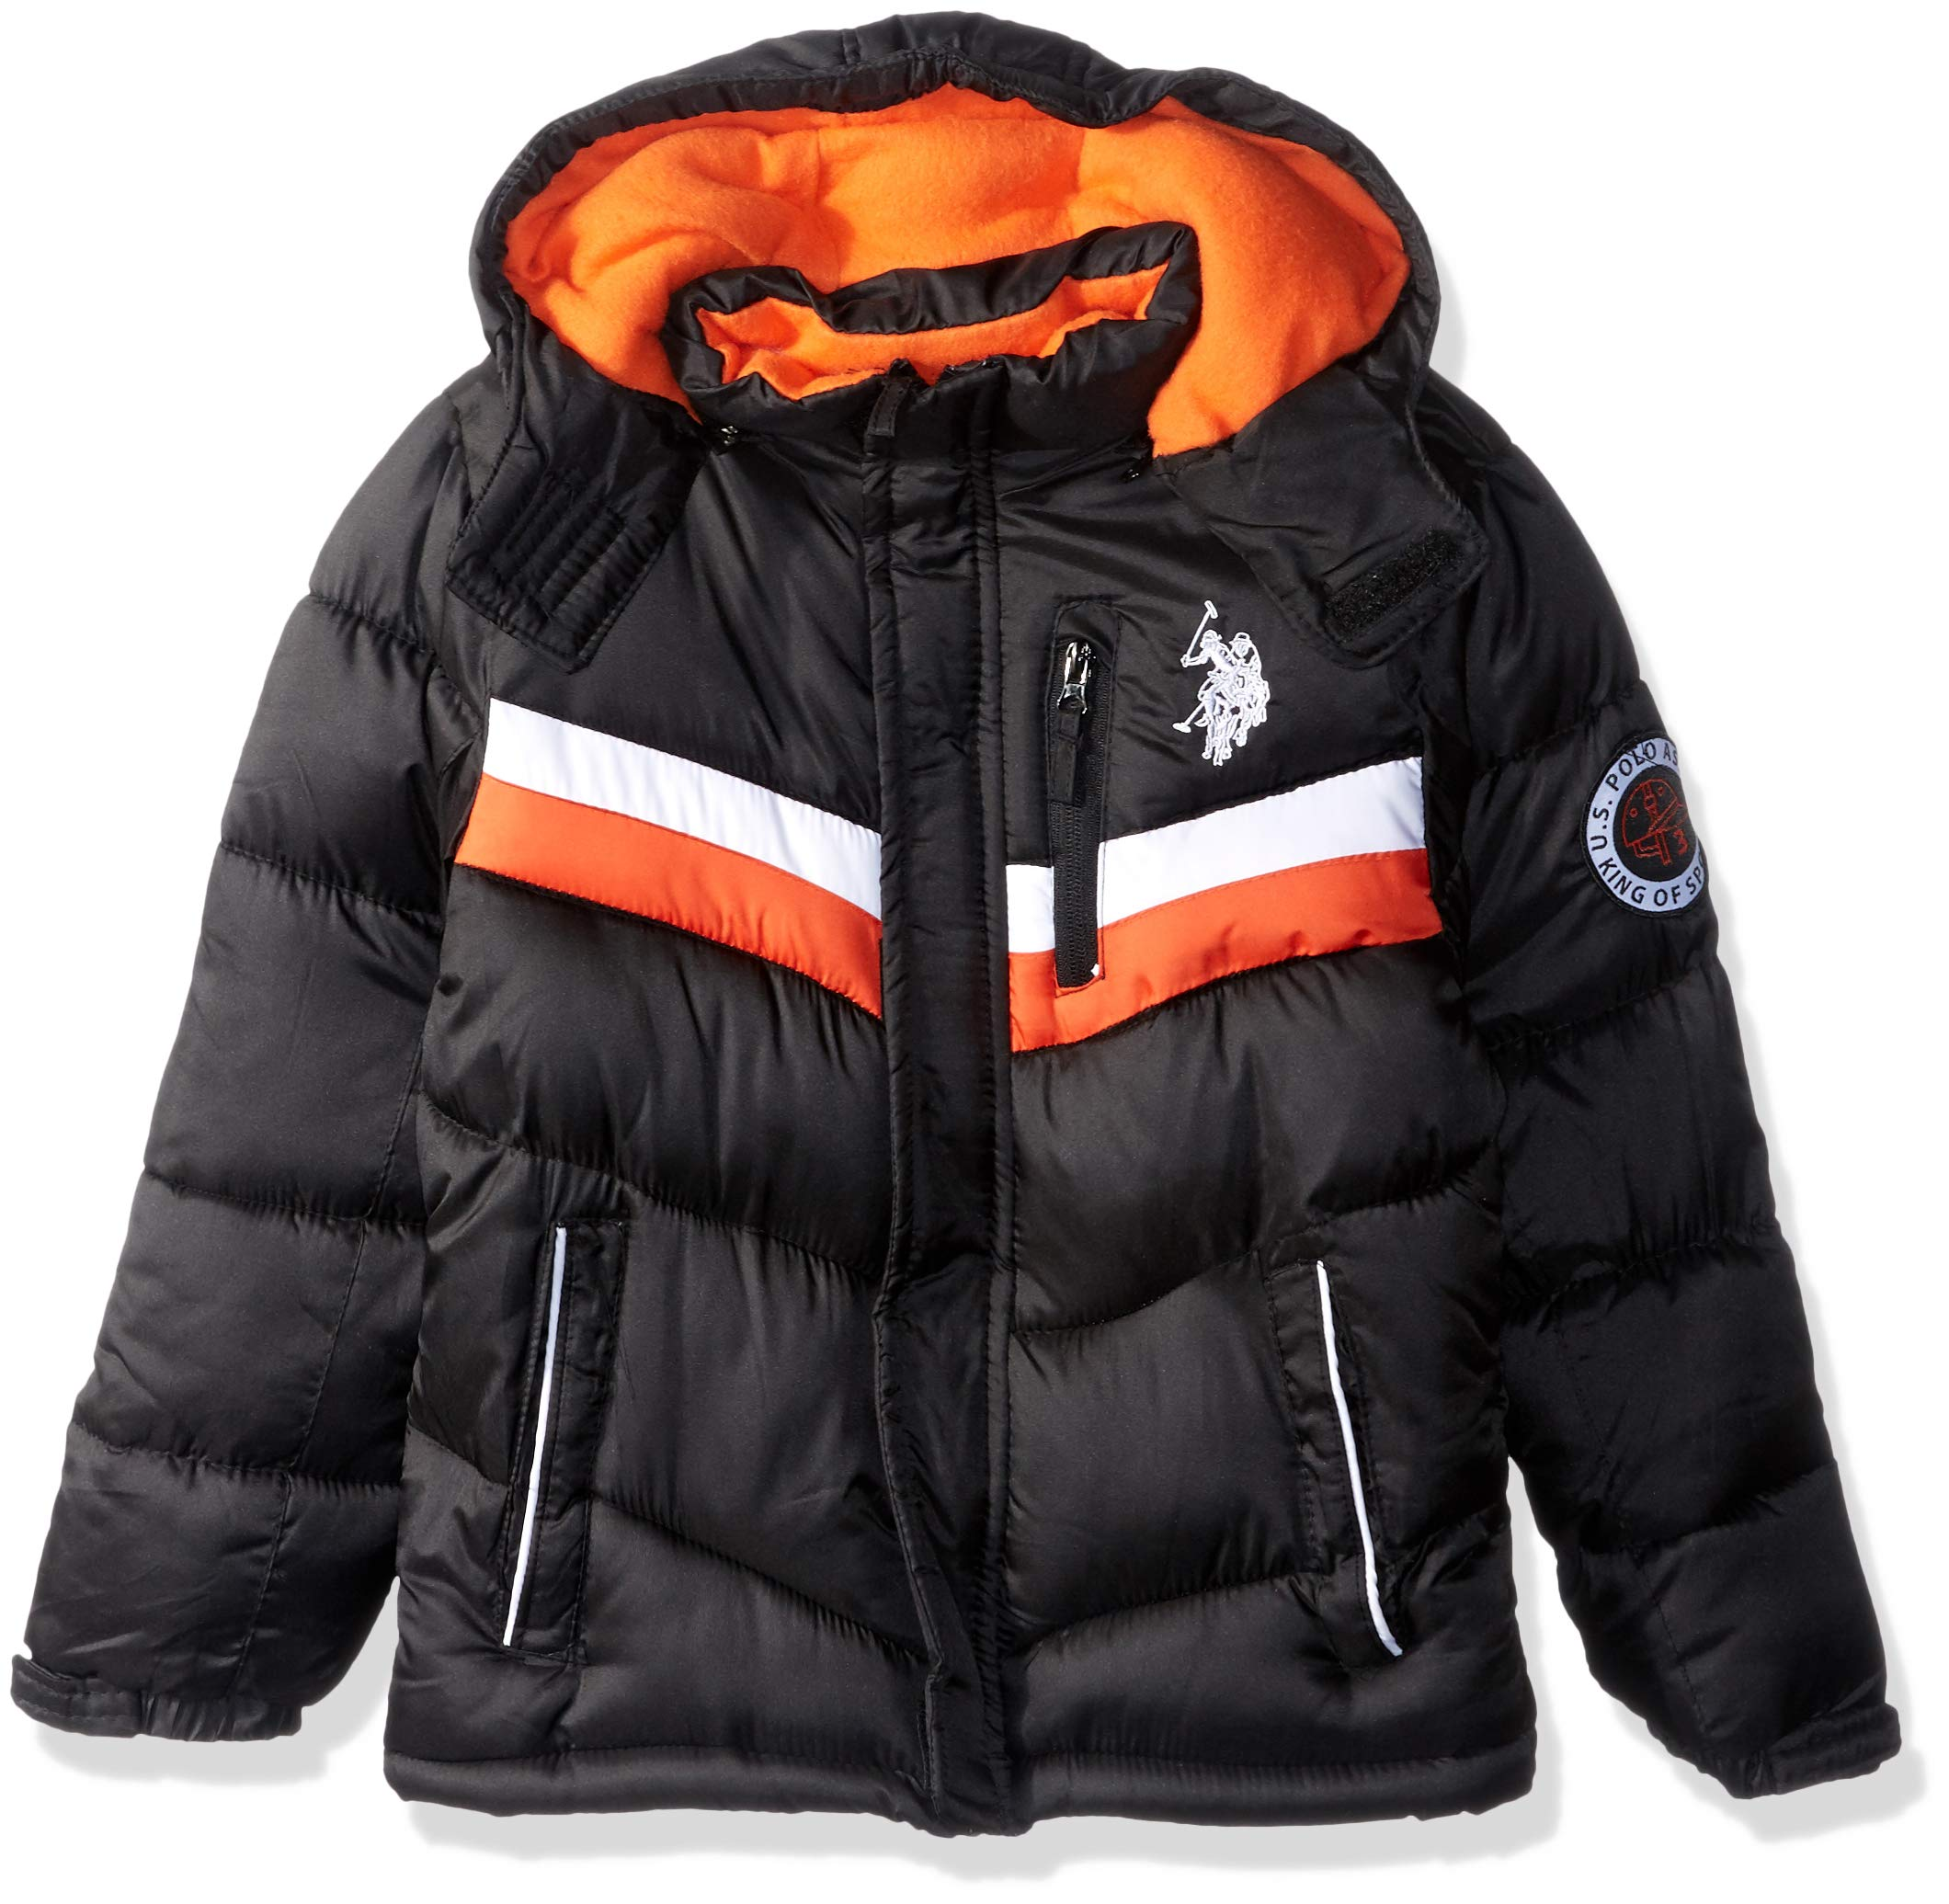 US Polo Association Boys' Big Classic Bubble Jacket, Black, 8